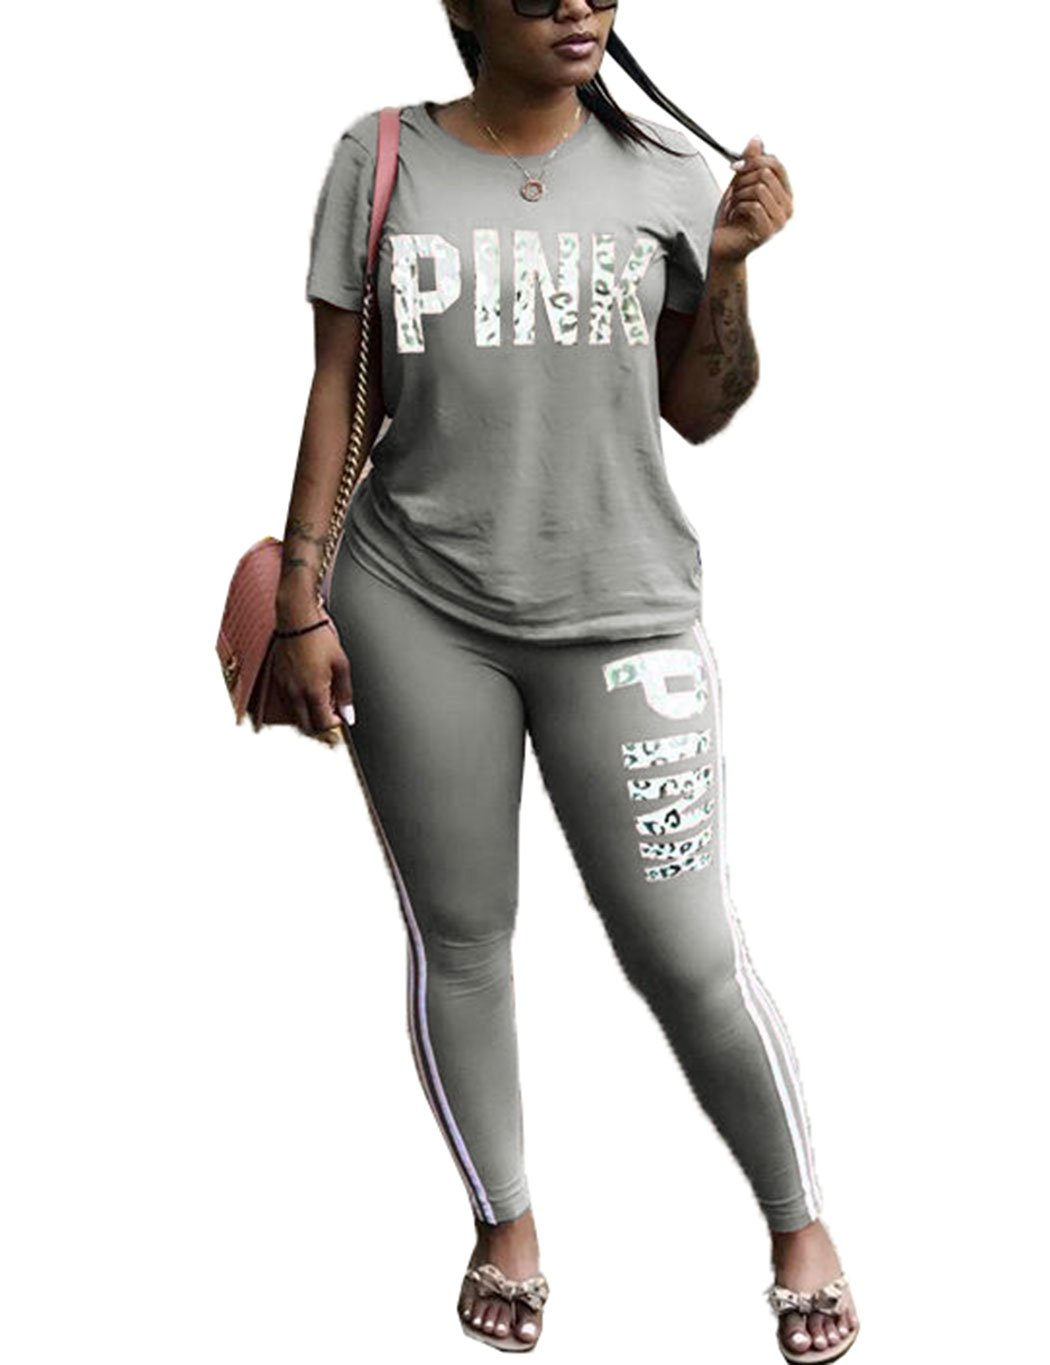 2018 Fashion Summer Two Piece Outfit Short Sleeve Tops and Long Pants for Young Ladies Grey L